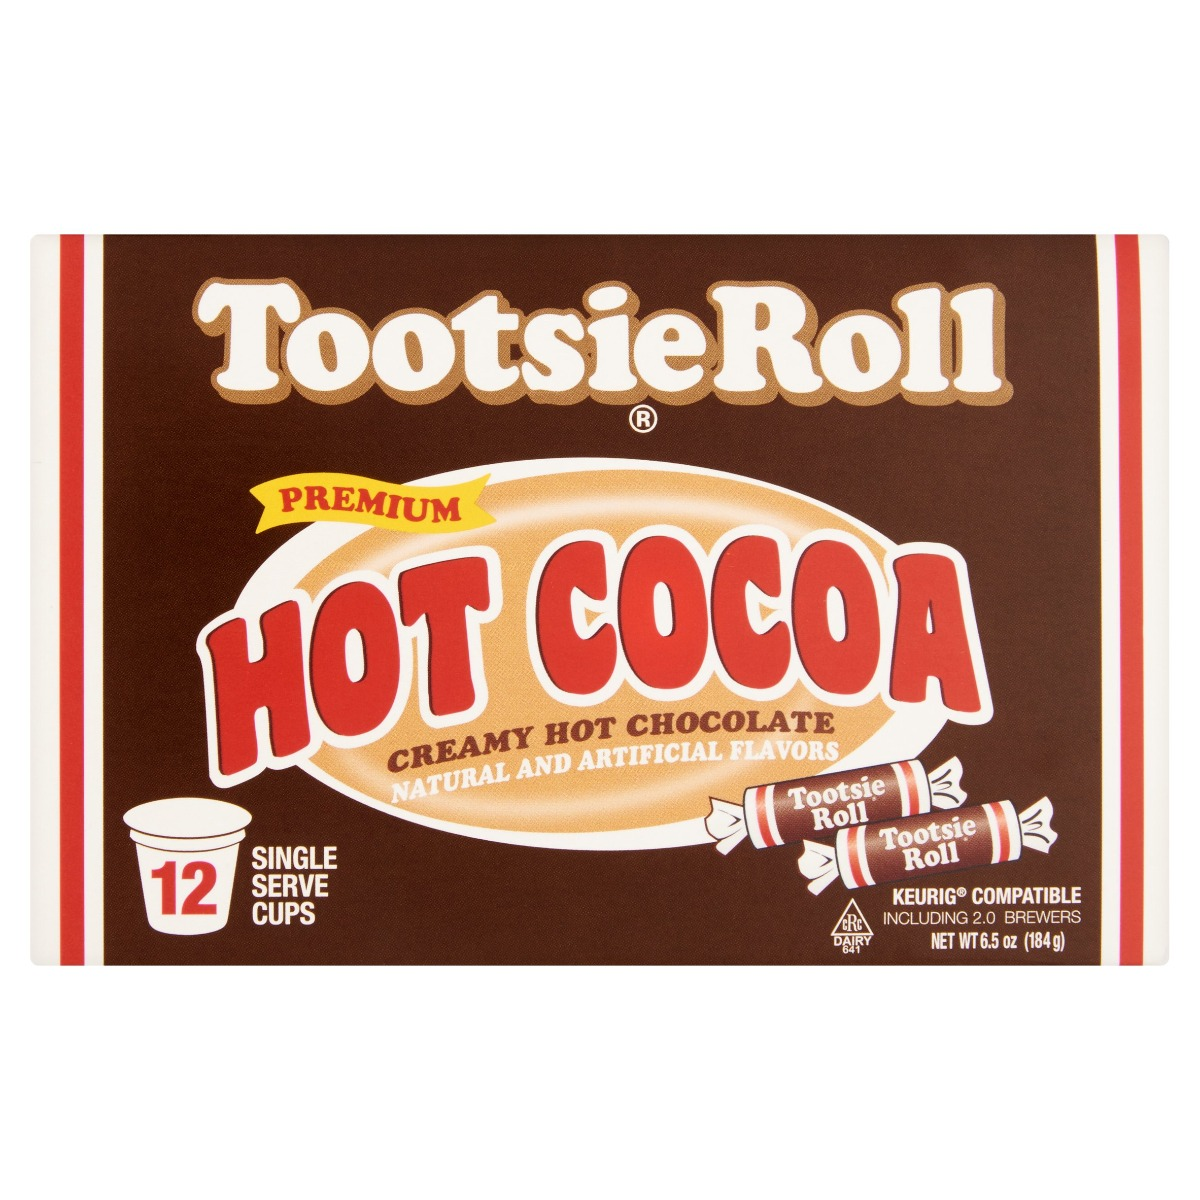 COCOA HOT TOOTSIE ROLL: Cocoa Hot Tootsie Roll, 12 pc